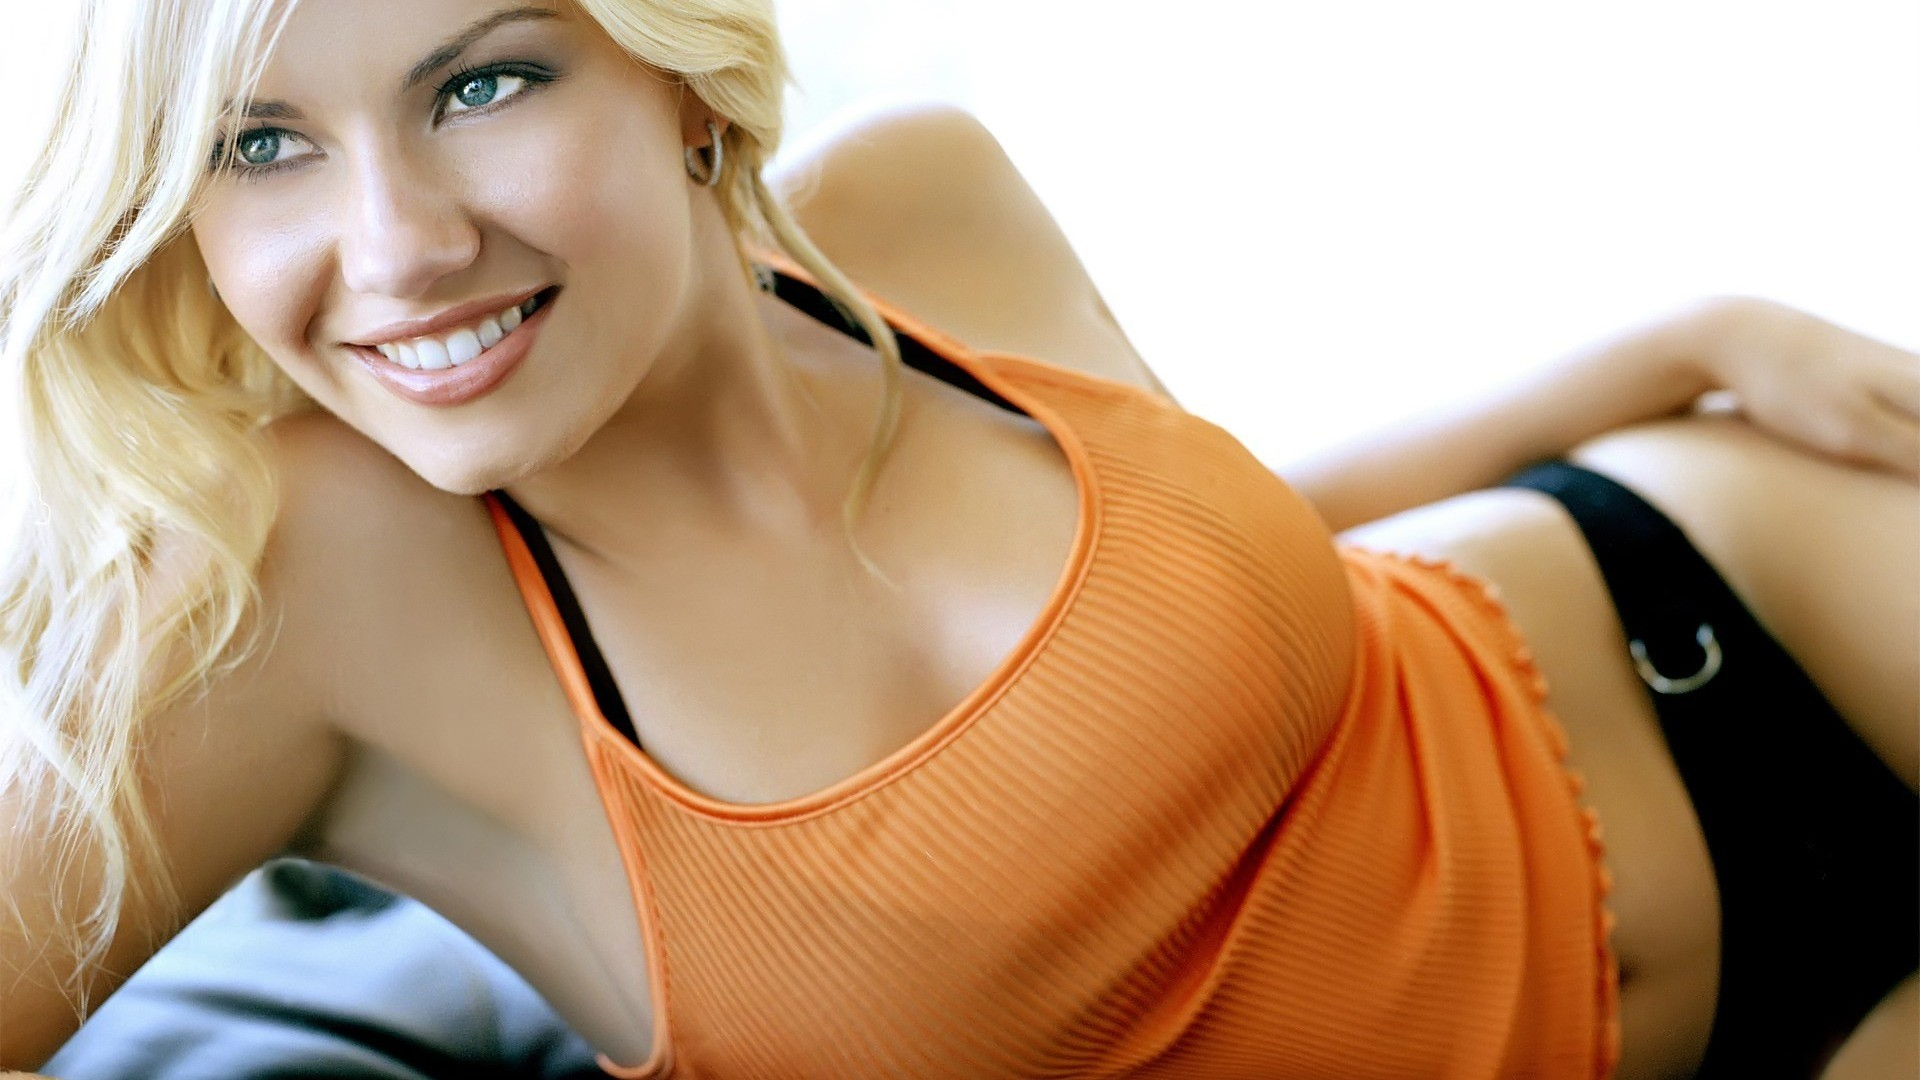 1920x1080 Wallpapers and pictures: Elisha Cuthbert beautiful smile wallpaper (1920 x  1080)